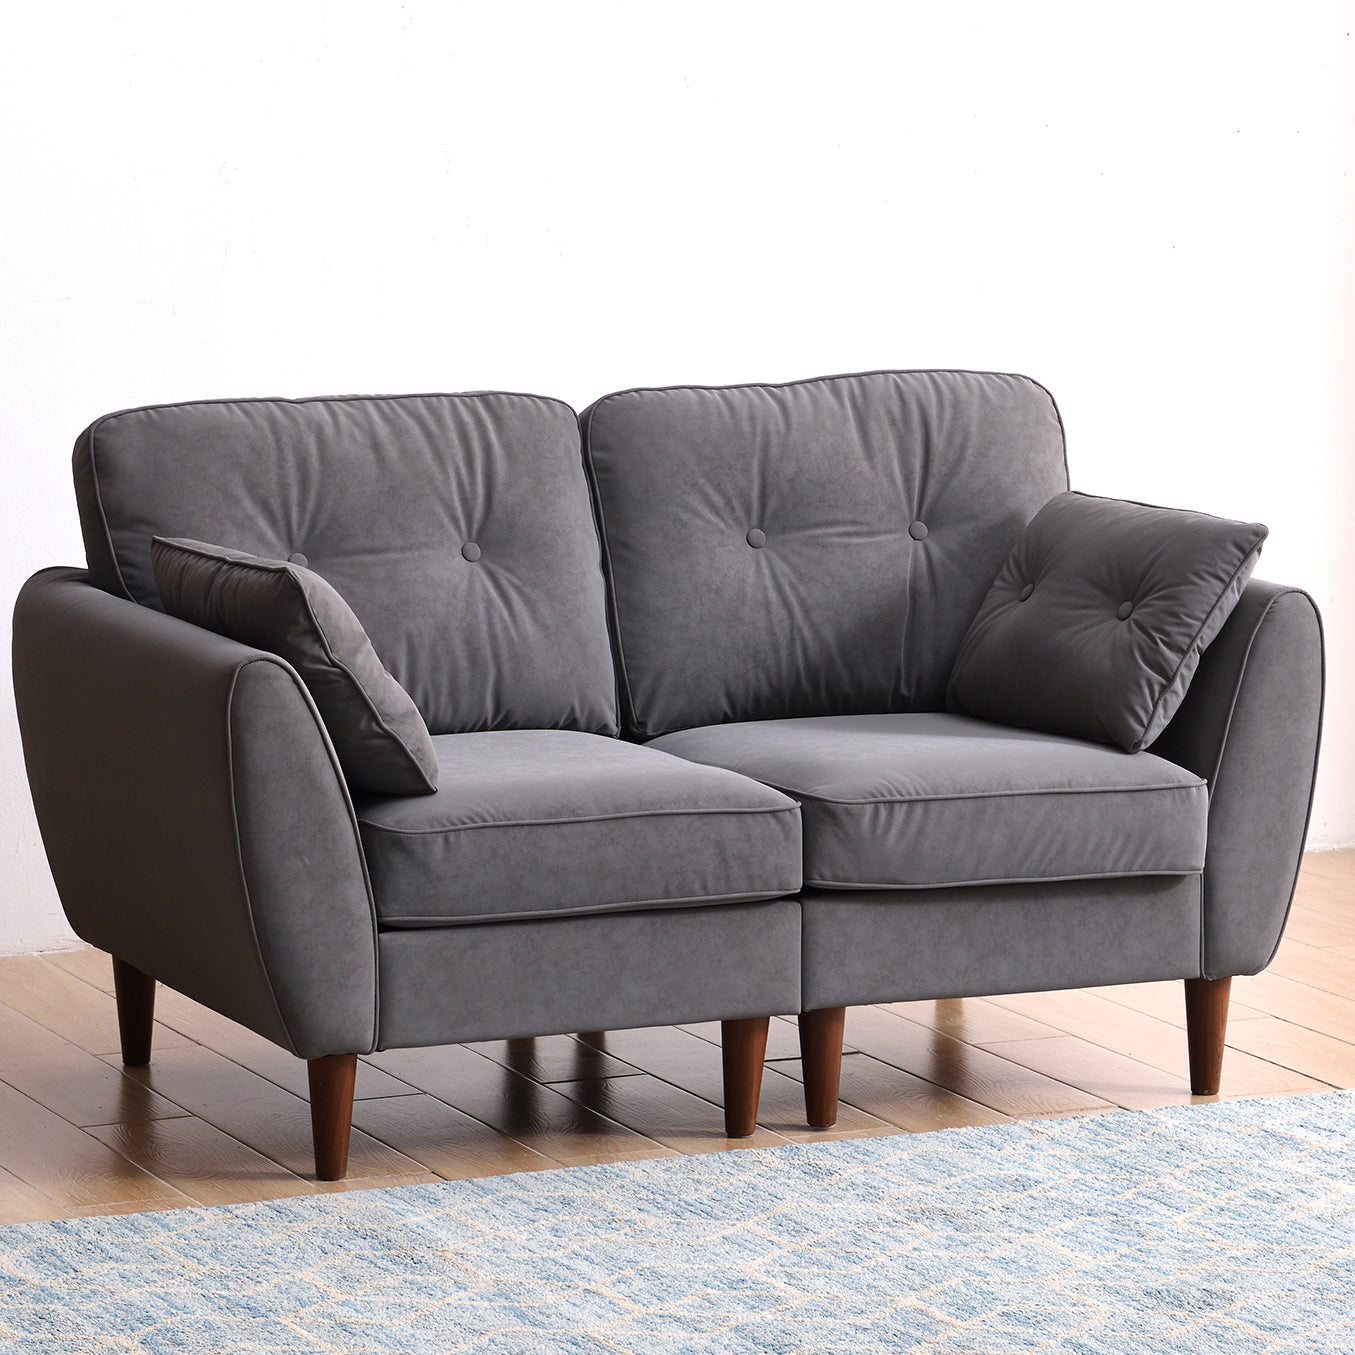 Brooks Sofa range in Grey PU Leather 2-seater option